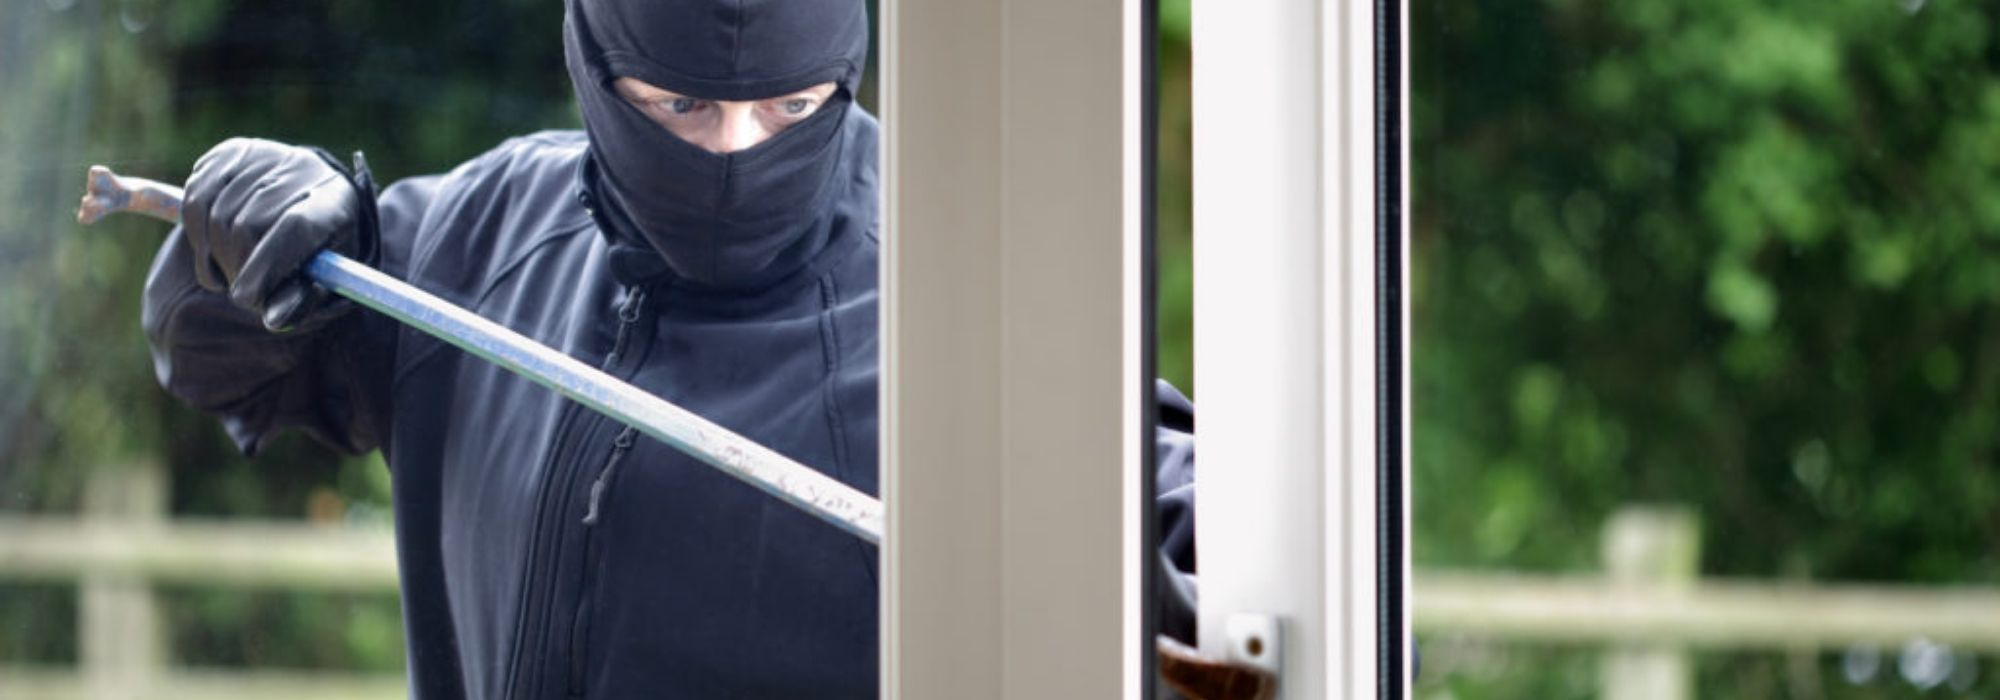 4 Terrible Home Security Mistakes That May Put You At Risk!